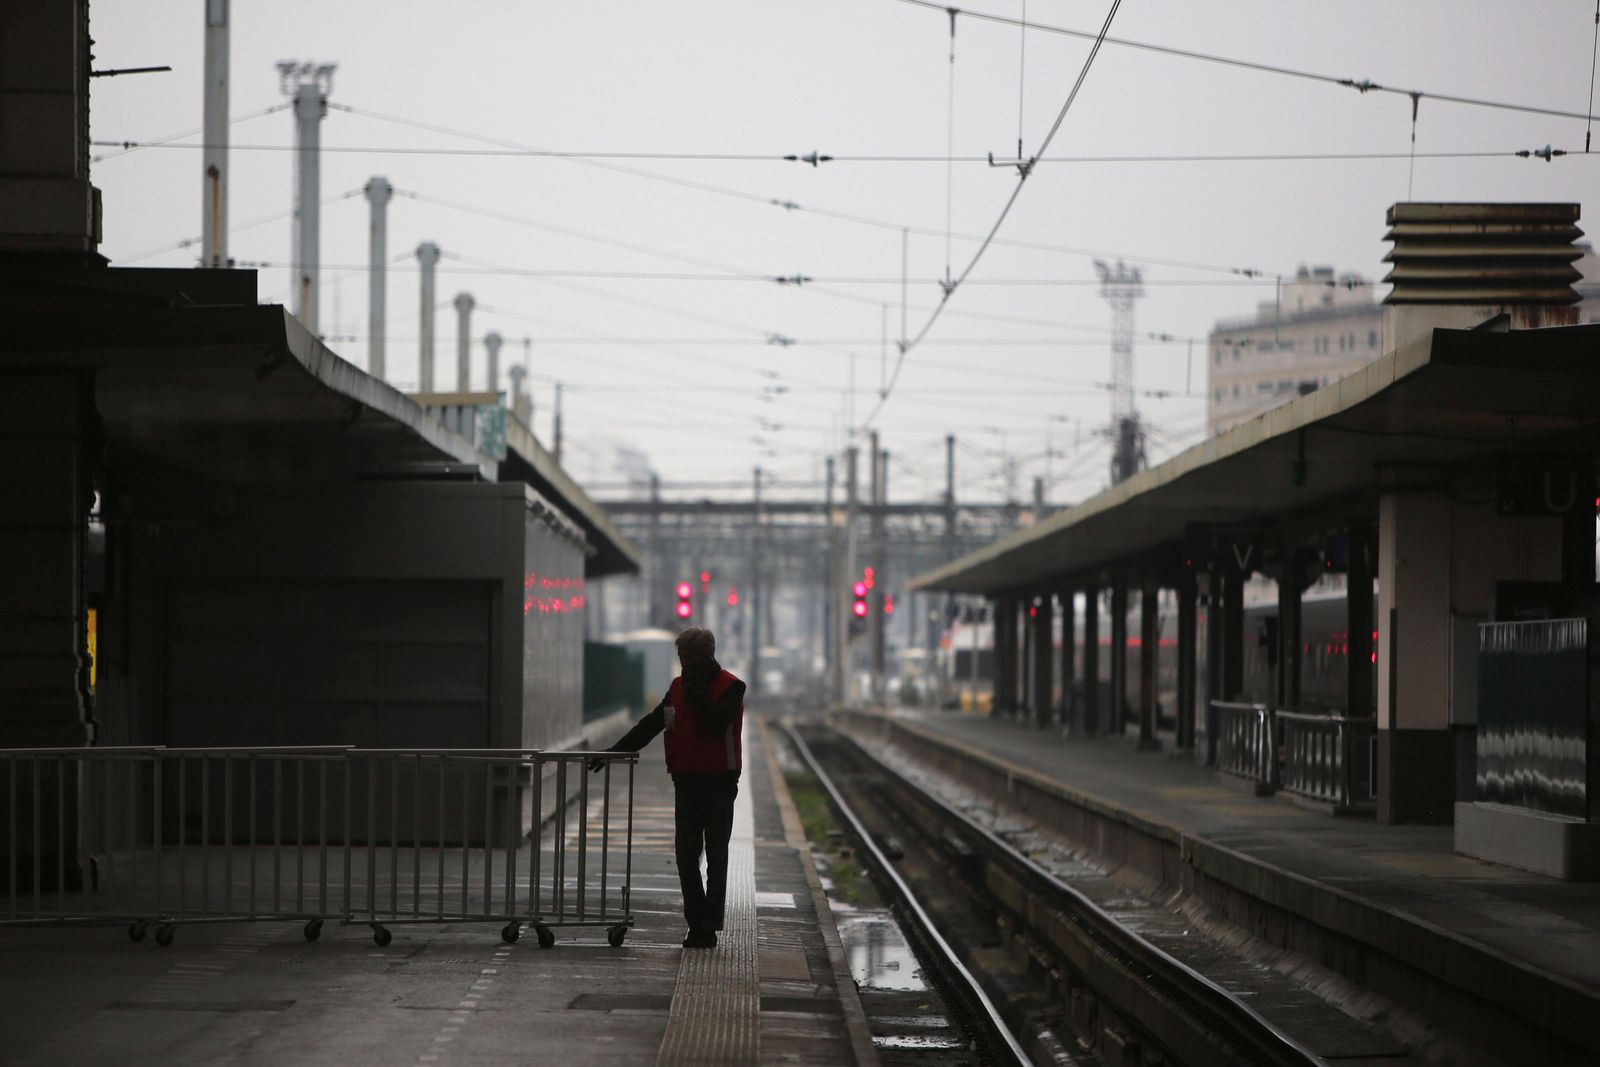 A man stands on a deserted platform at the Gare de Lyon train station, Friday, Dec. 6, 2019 in Paris.{ } (AP Photo/Rafael Yaghobzadeh)